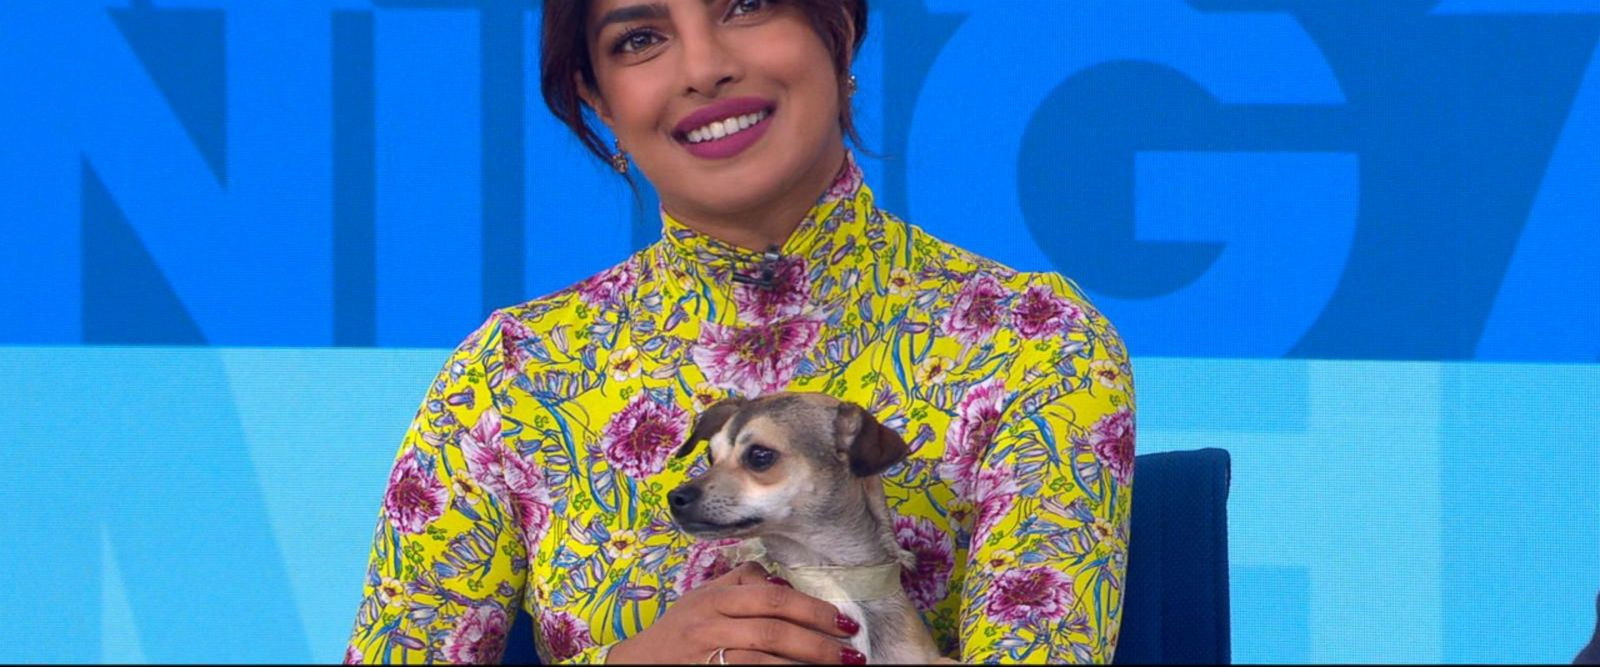 VIDEO: Catching up with Priyanka Chopra, and her dog, on 'GMA'